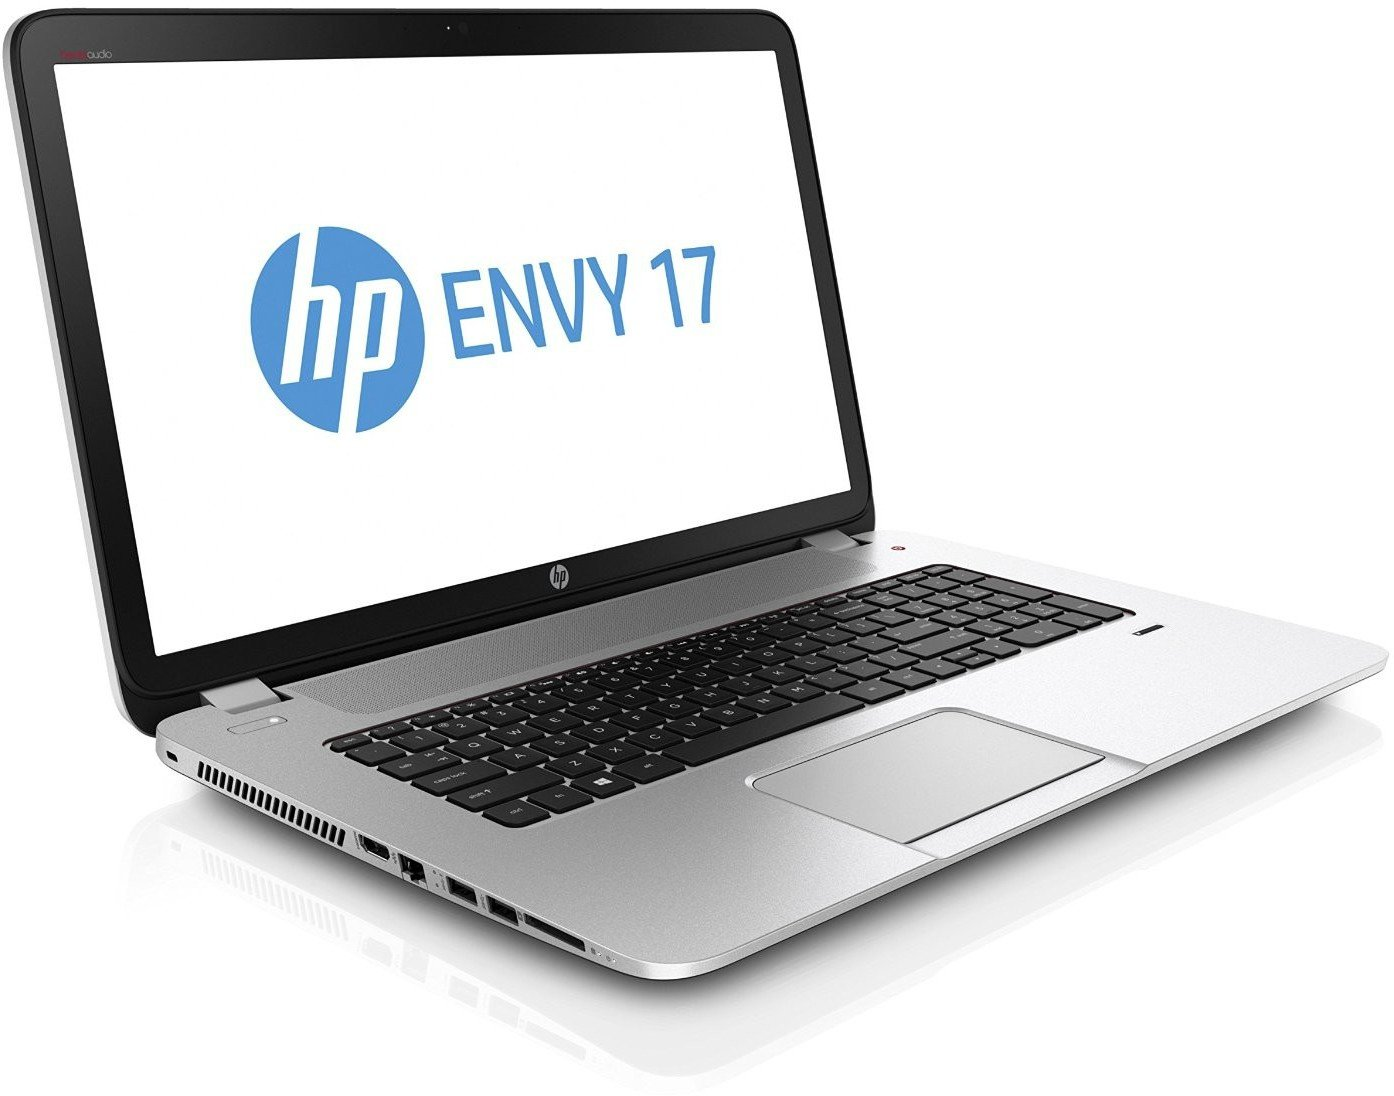 hp envy 17 j111sl f9e85ea test notebook. Black Bedroom Furniture Sets. Home Design Ideas